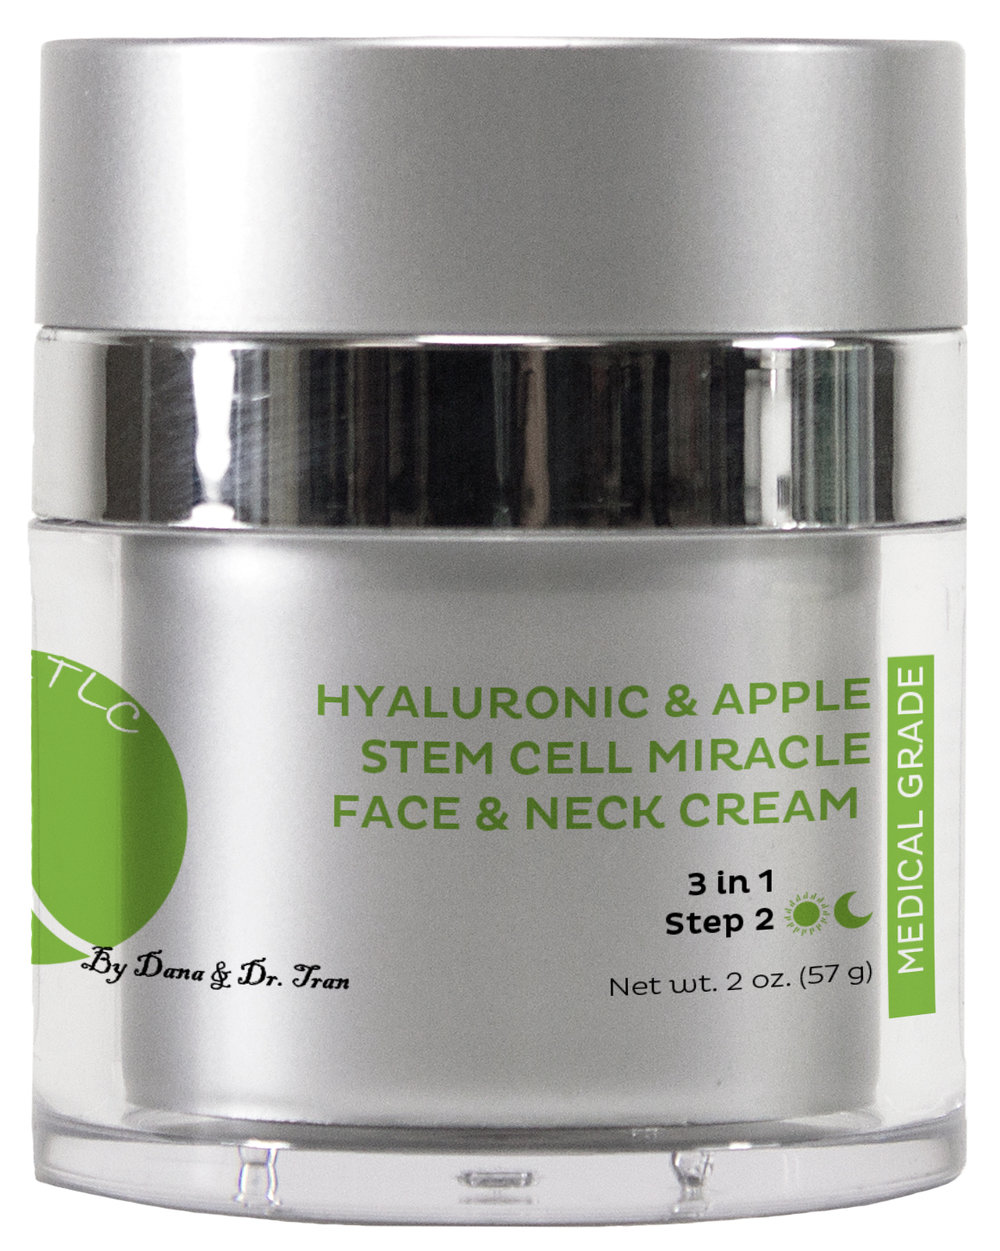 Hyaluronic & Apple Stem Cell Miracle face and Neck Cream